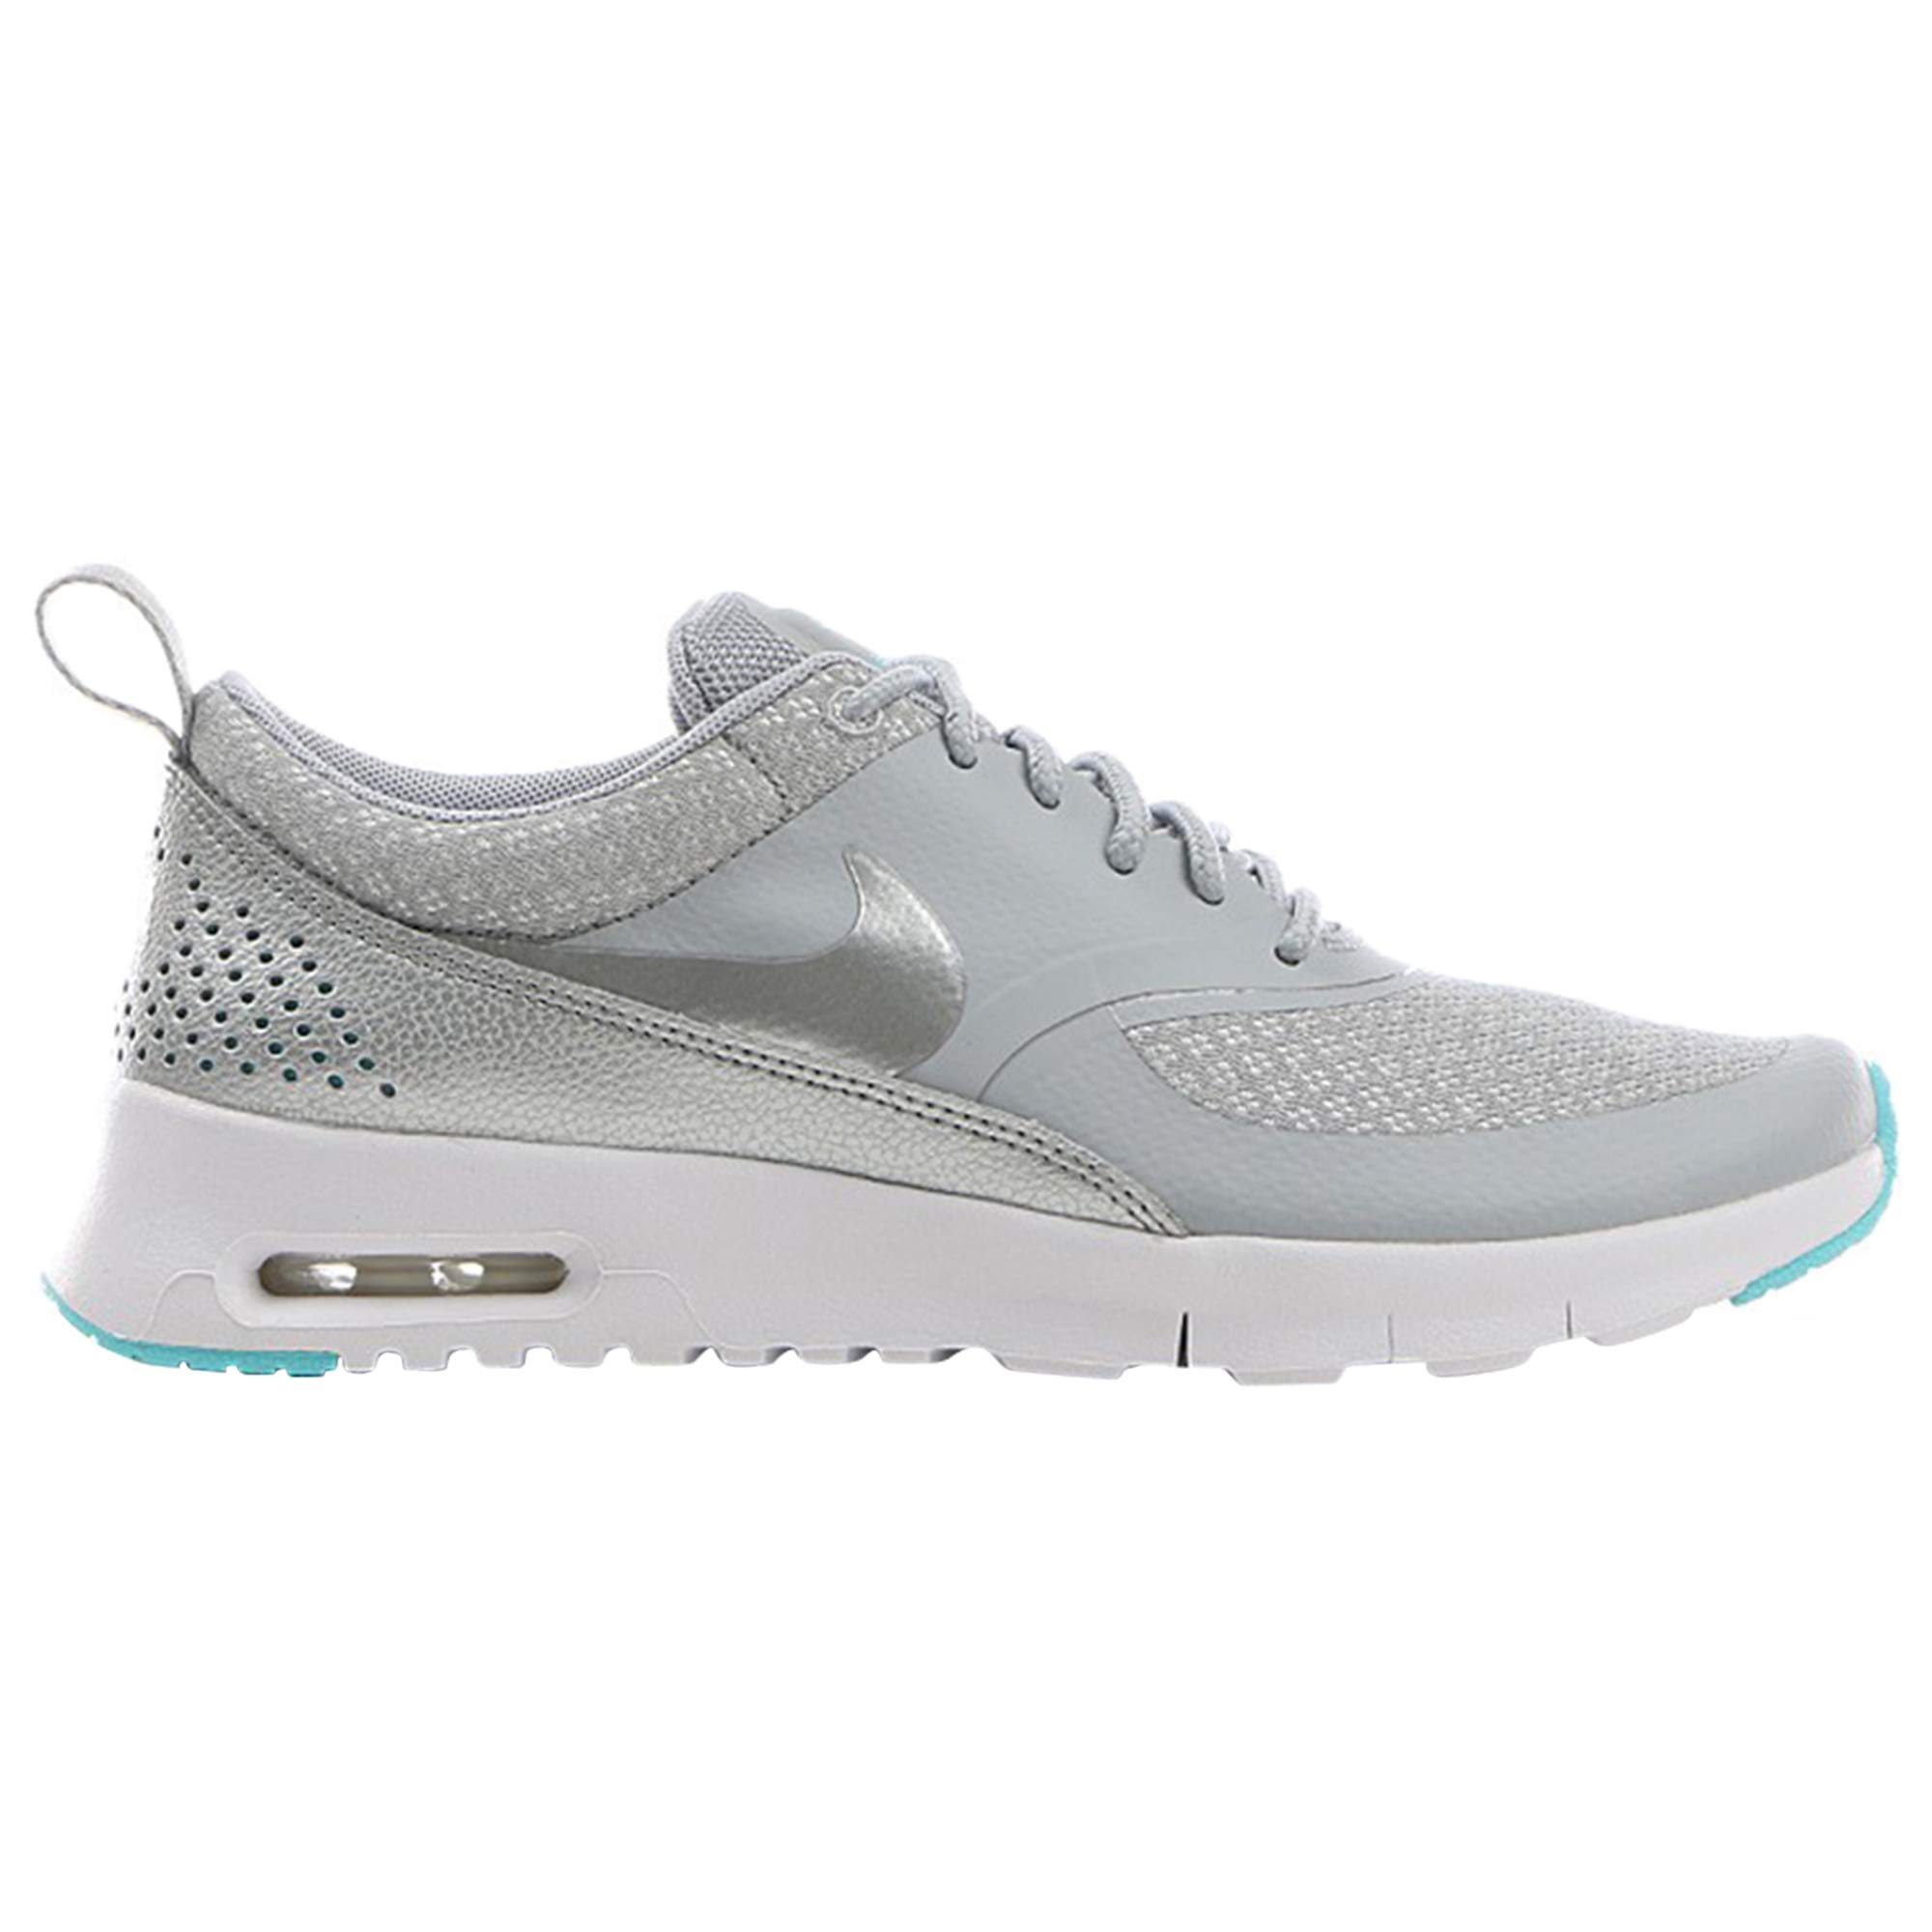 09cf3583f0 Galleon - NIKE Air Max Thea Big Kids Style : 814444-010 Size : 6.5 Y US